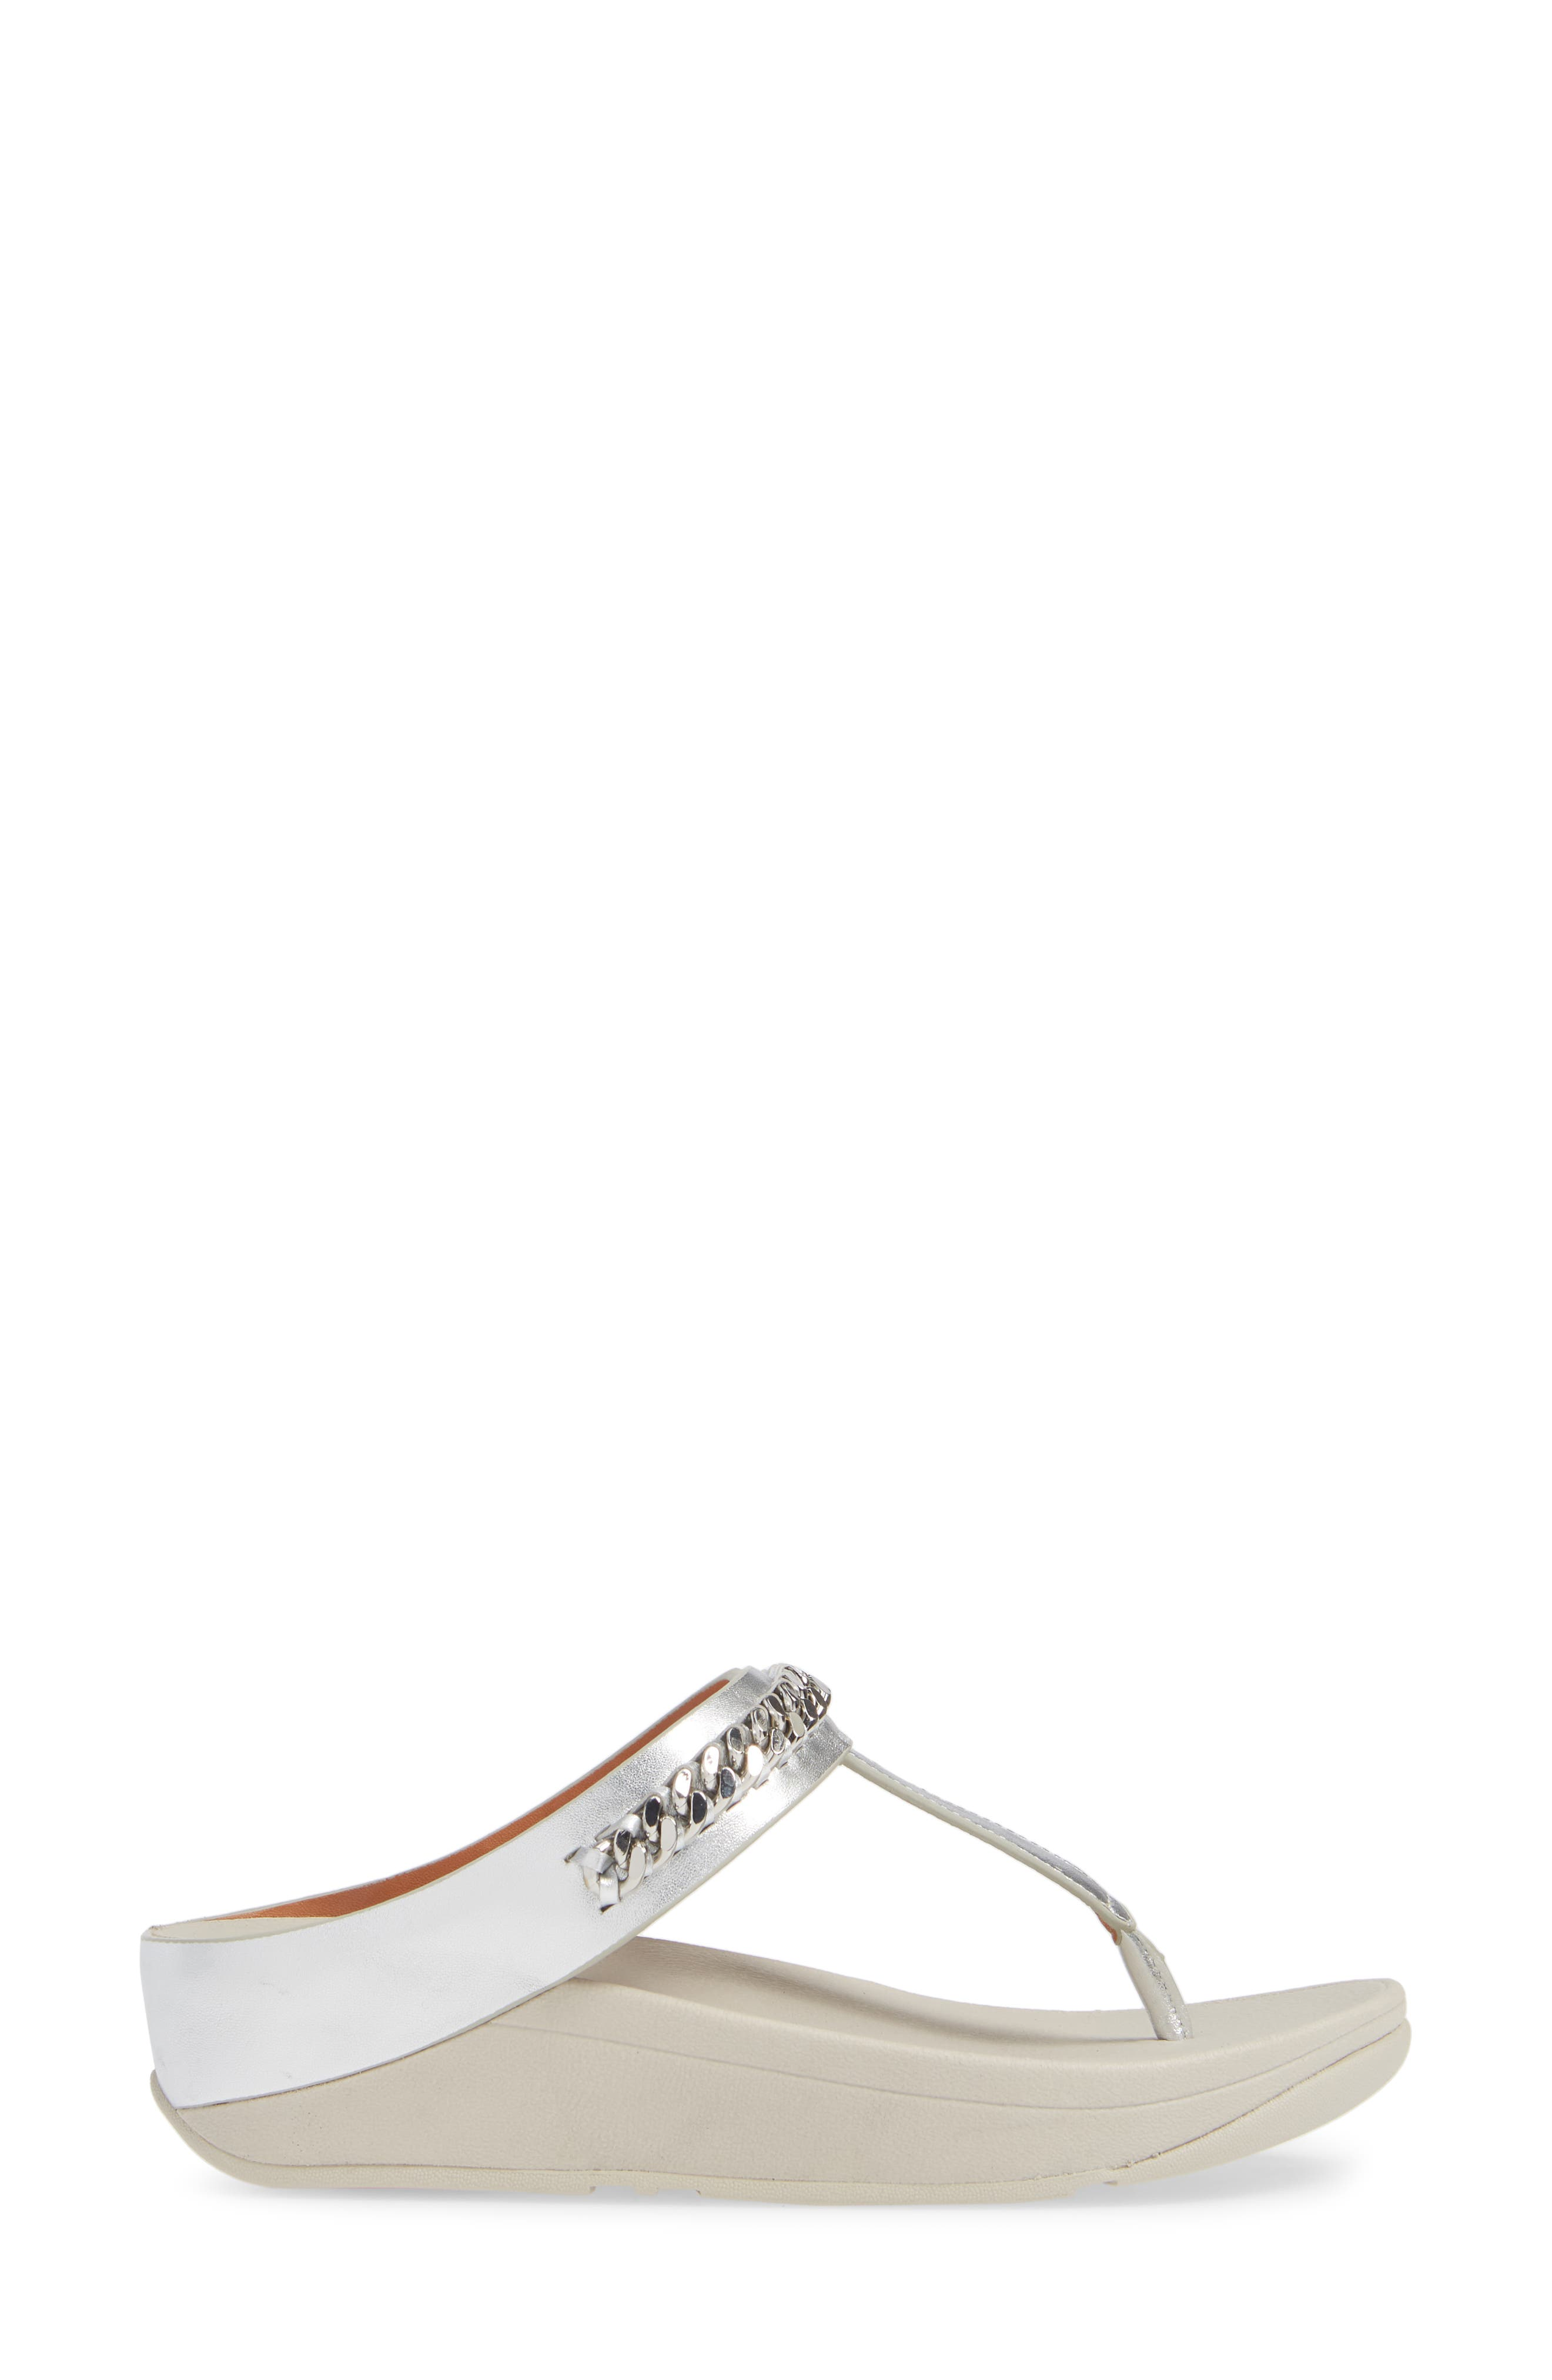 Fino Flip Flop,                             Alternate thumbnail 3, color,                             SILVER LEATHER